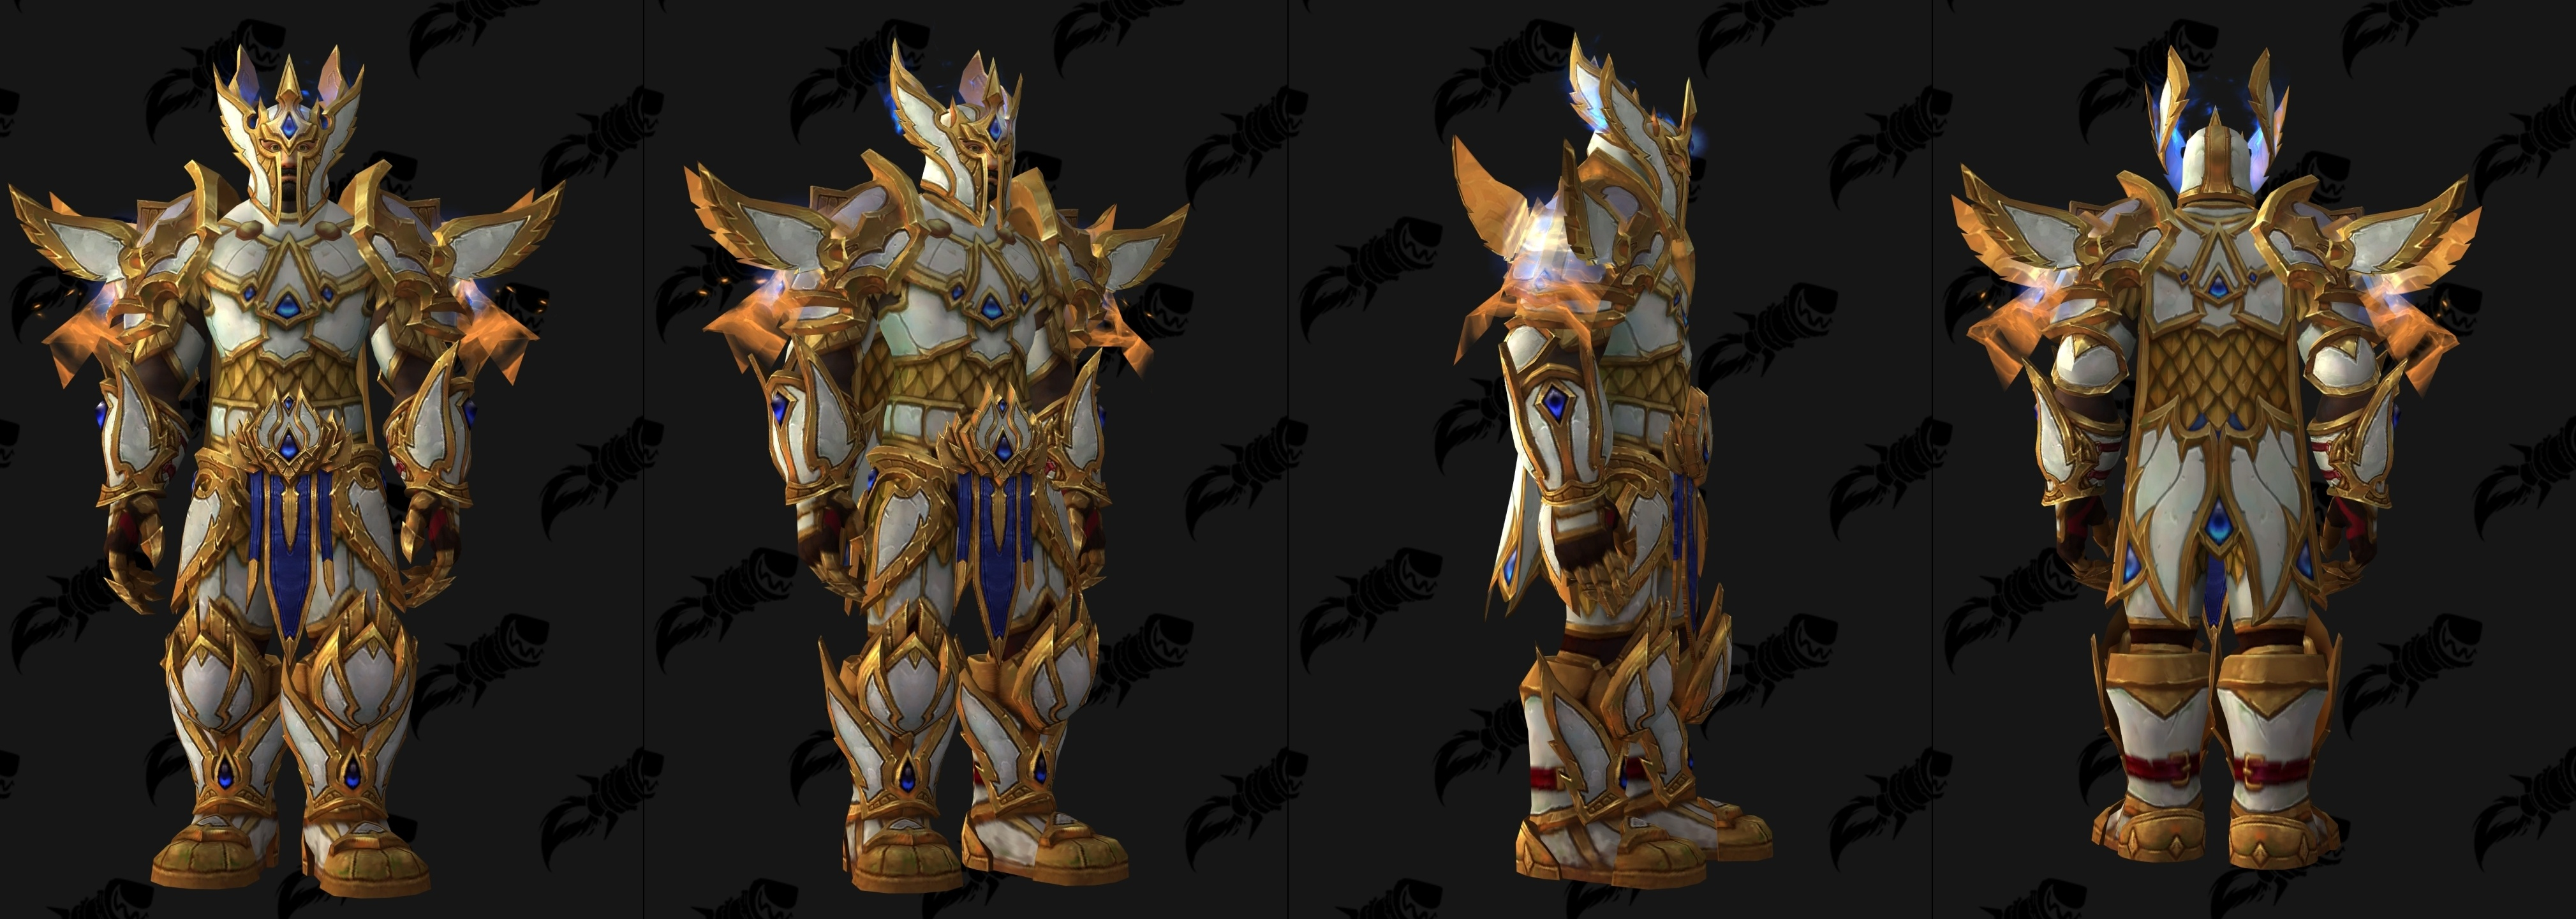 Mythic Prot Paladin Build